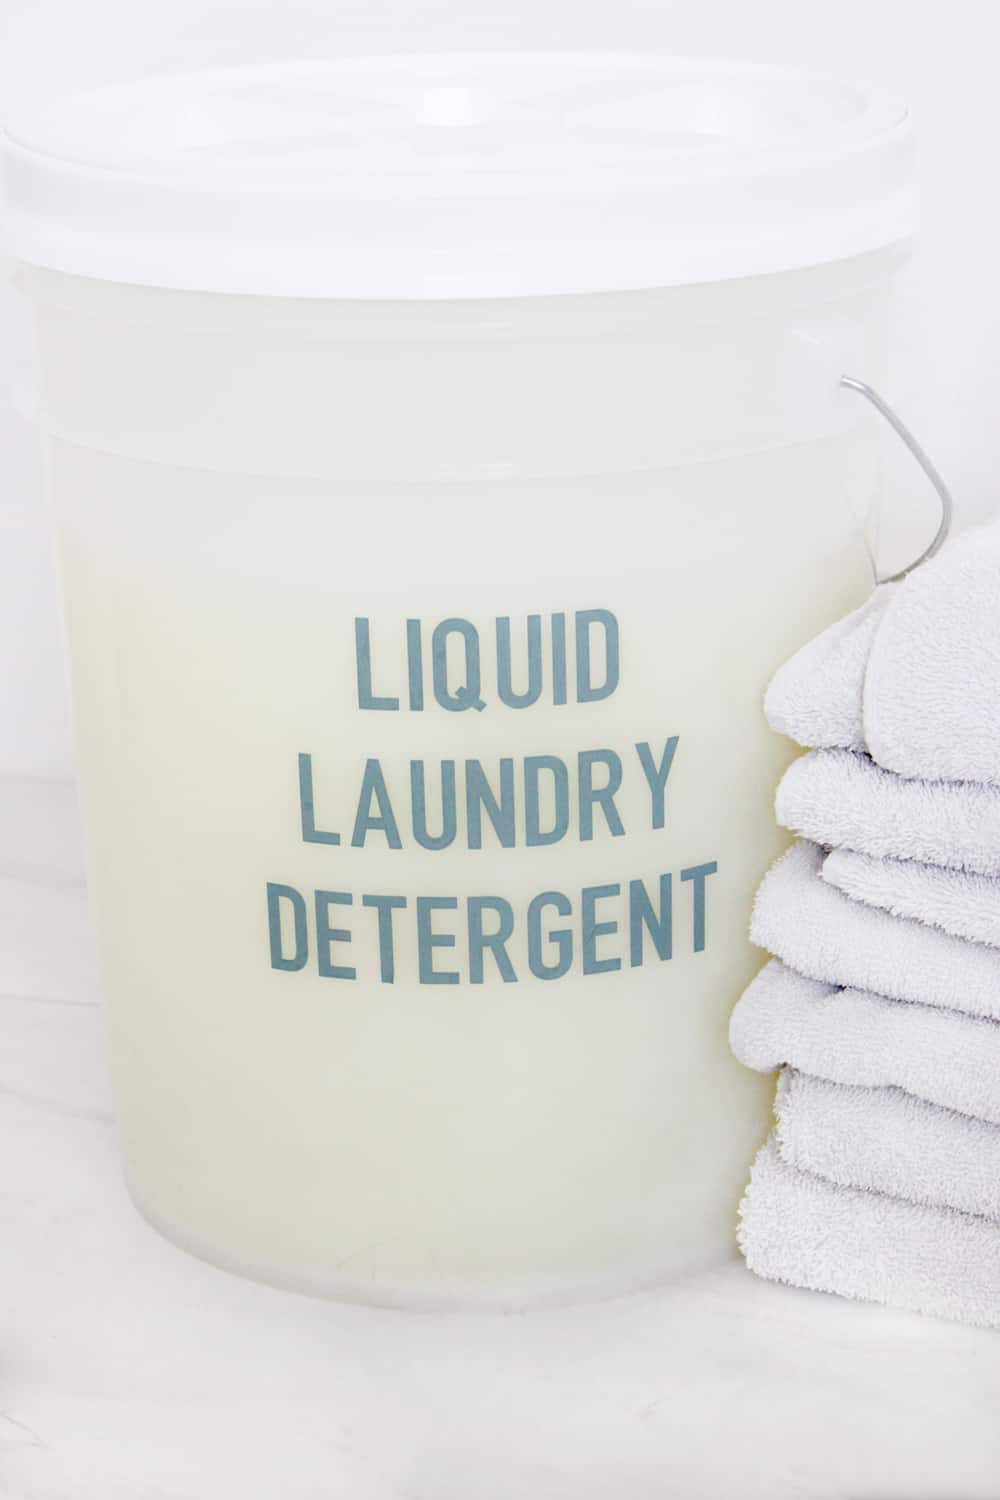 Easy DIY liquid laundry detergent in a 5 gallon bucket!